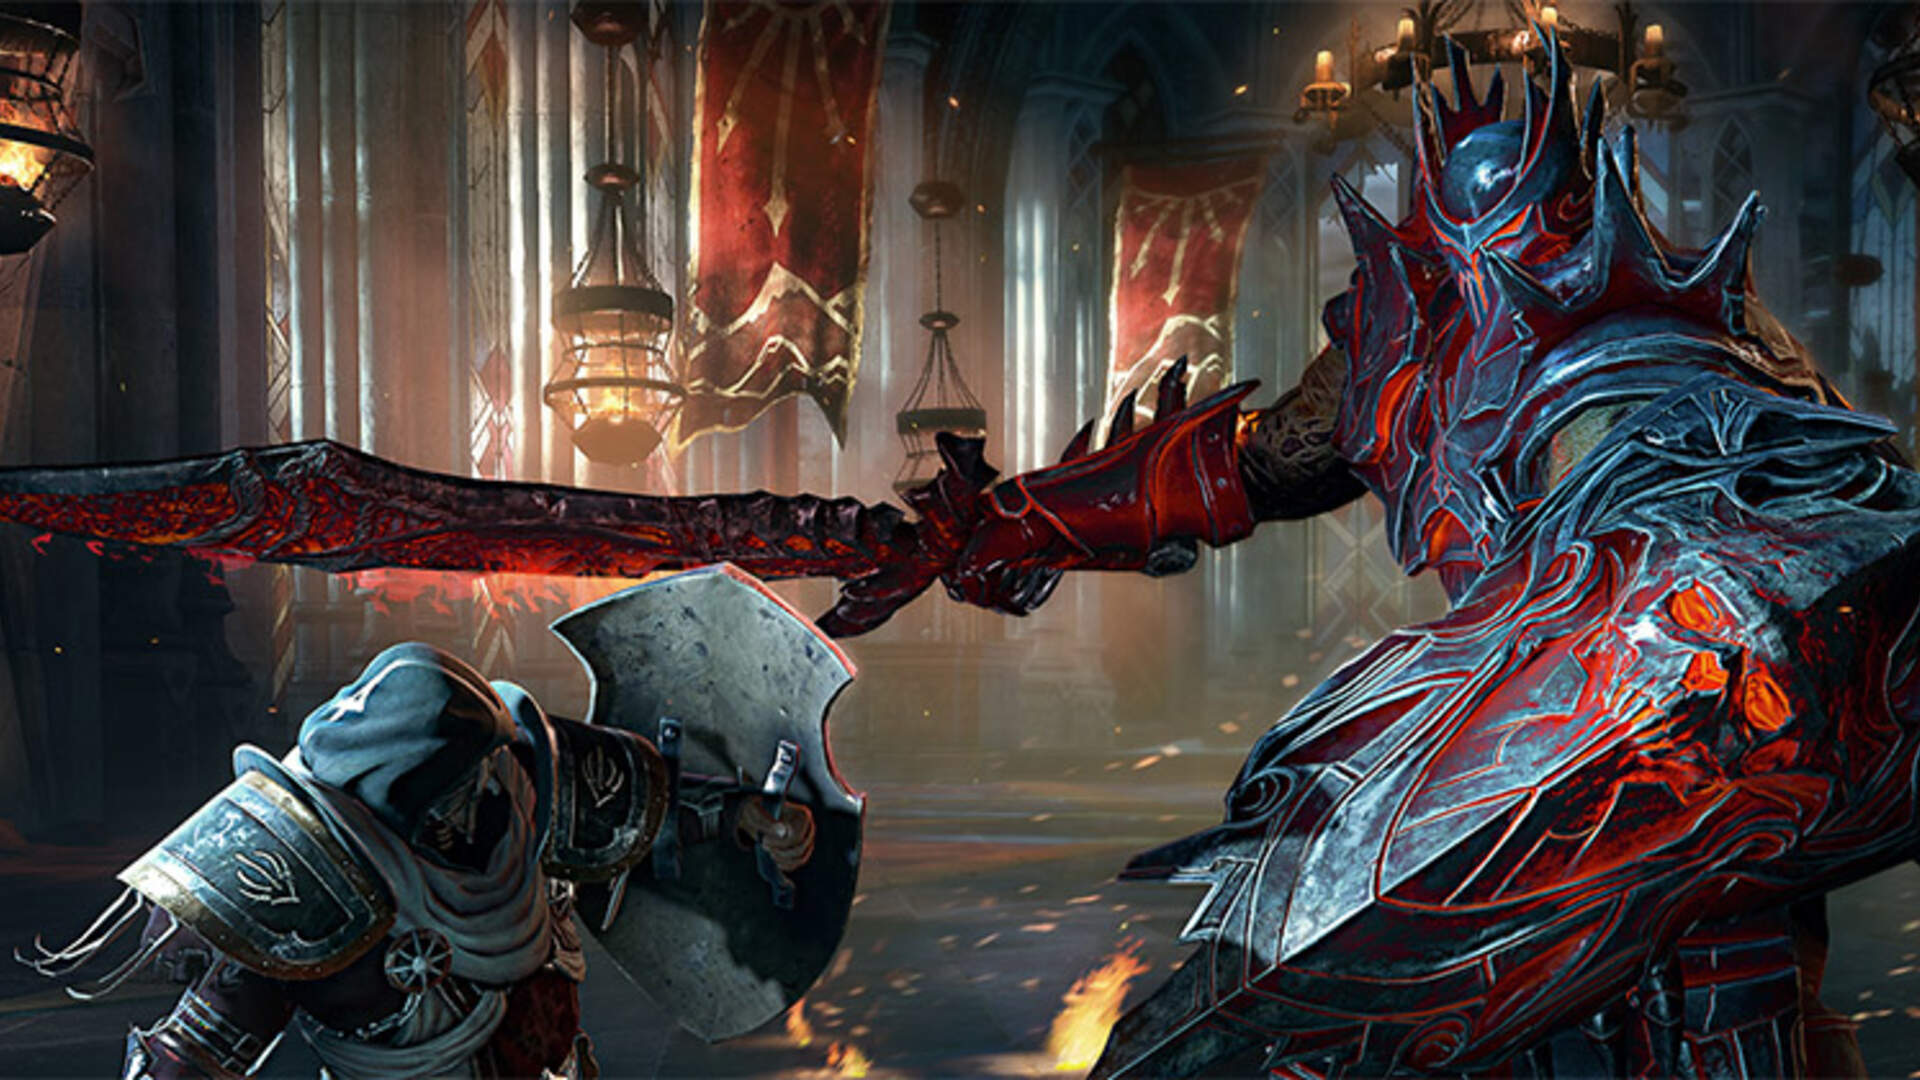 Lords of the Fallen Lack-of-Progress Review: How the Sausage Gets Made